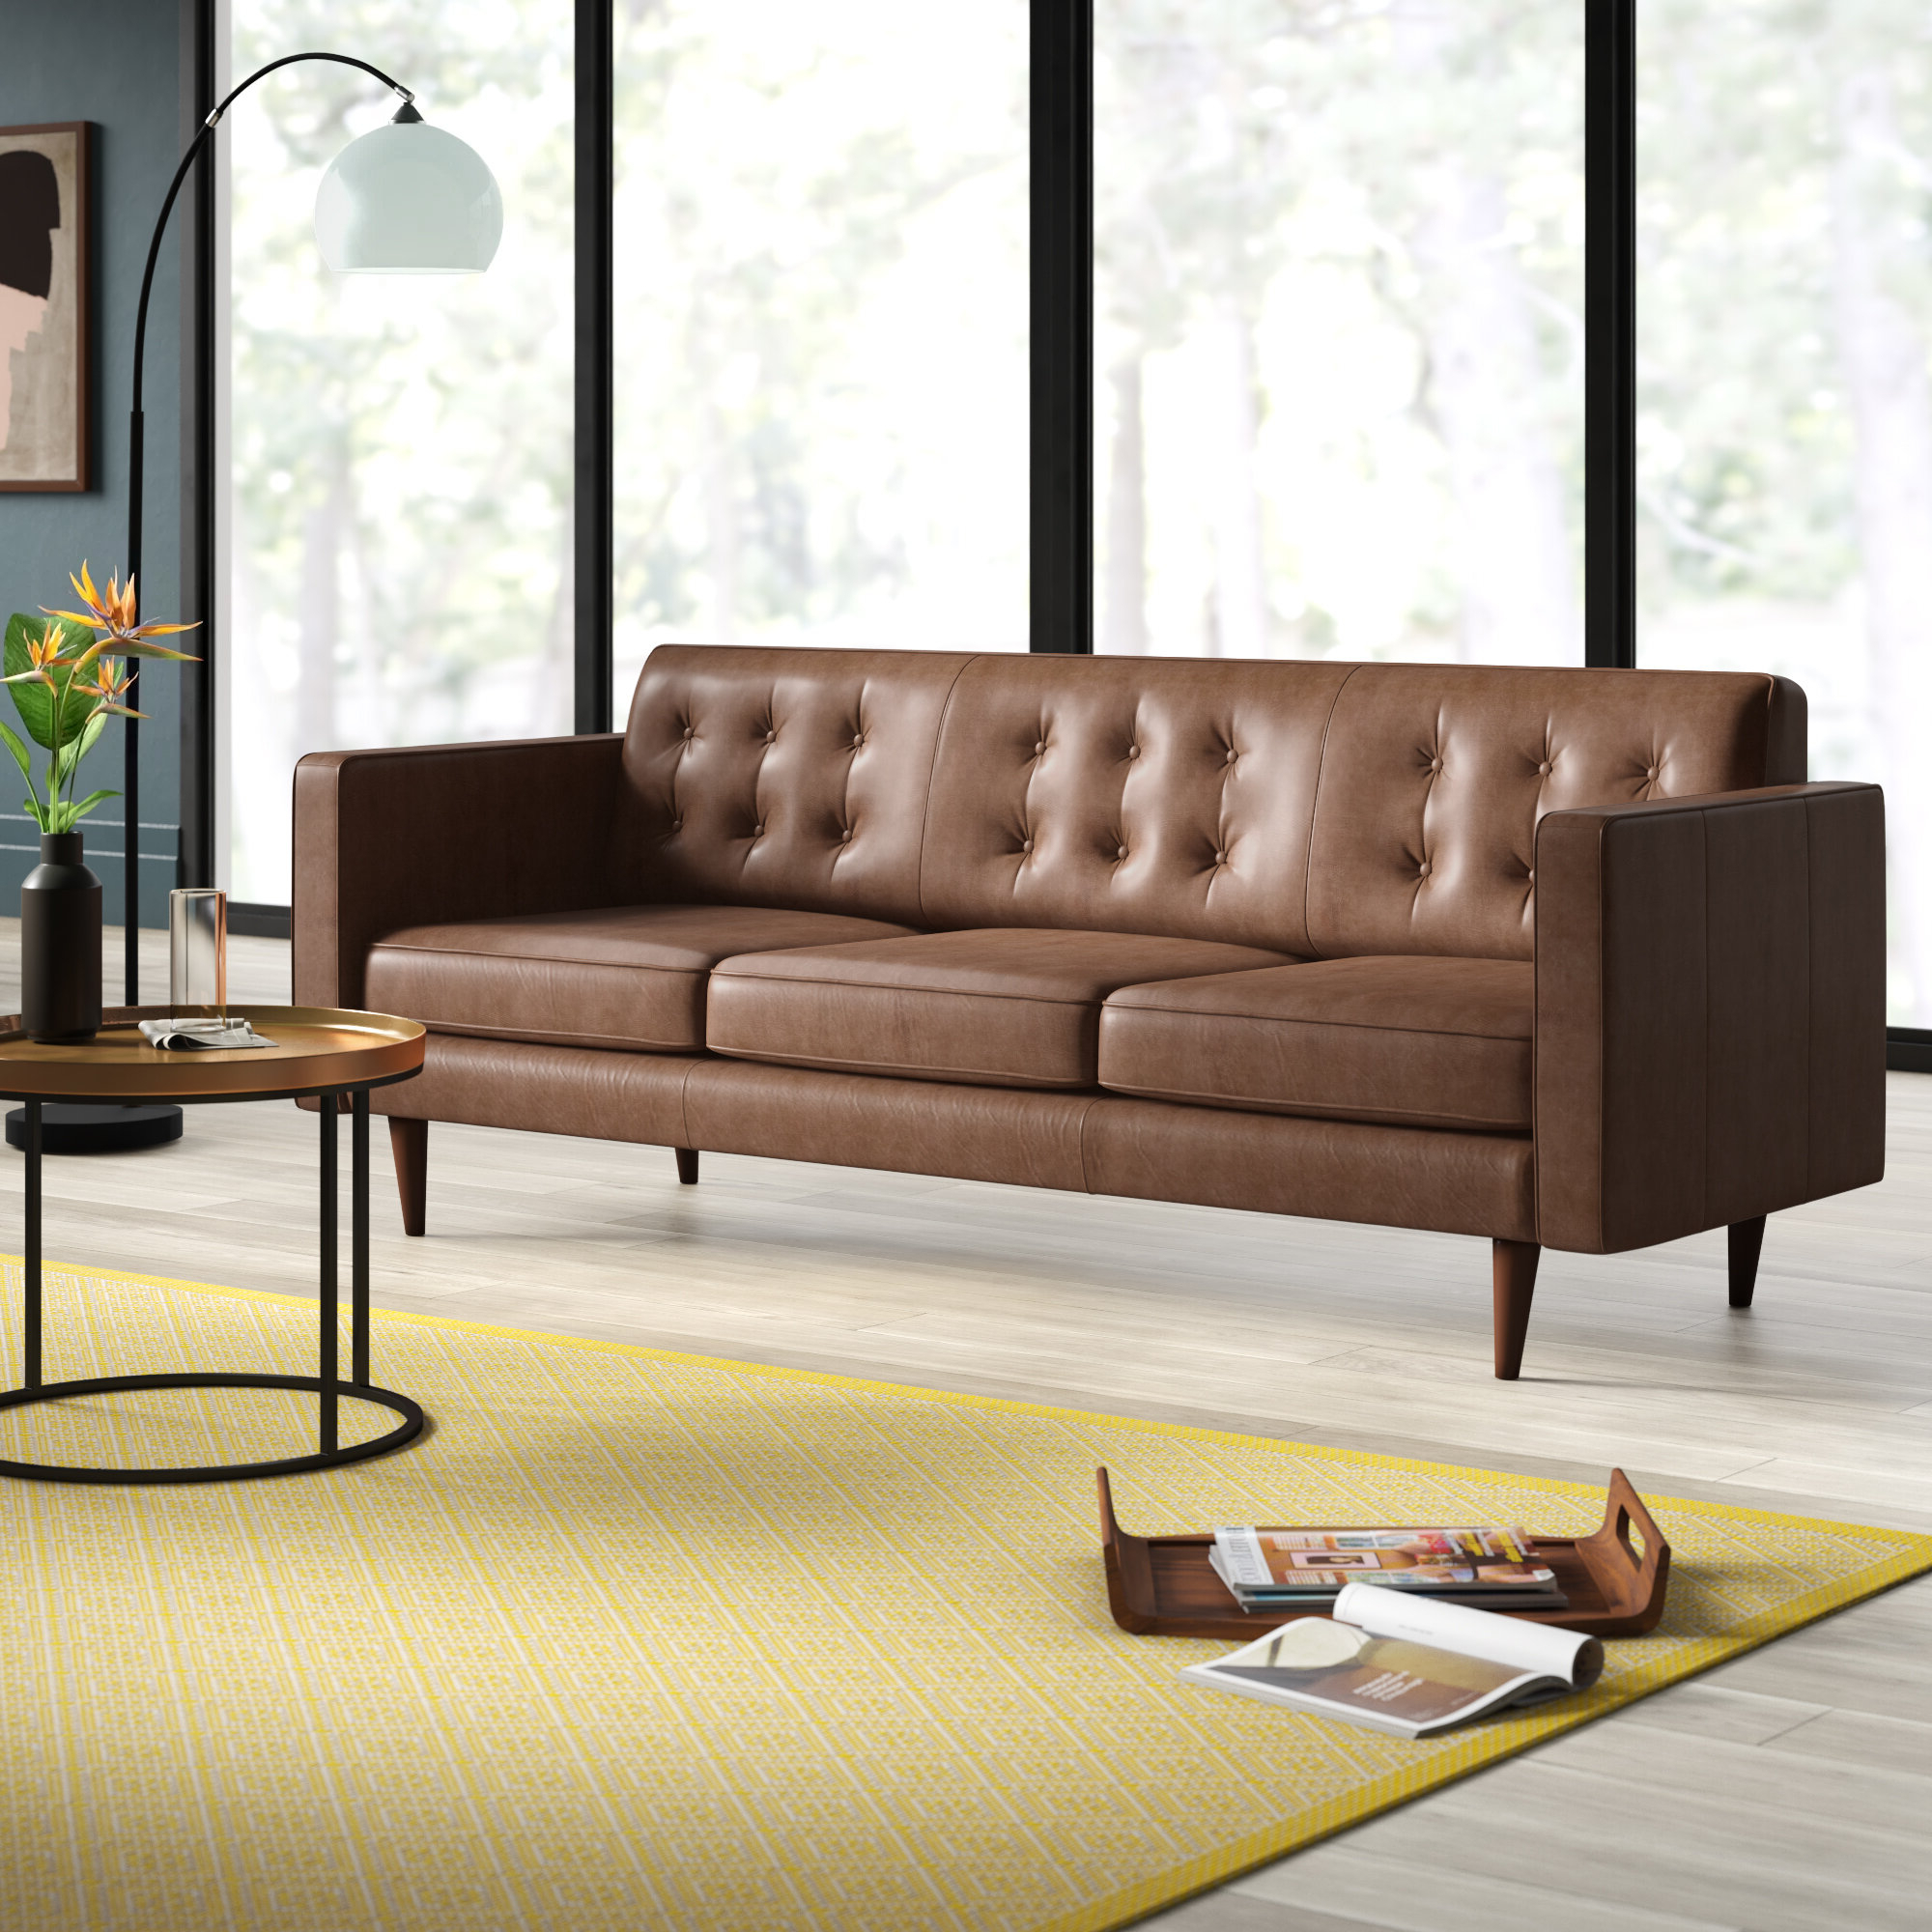 Widely Used Wood Chair Second: Leather Sofa Mid Century Modern Regarding Florence Mid Century Modern Right Sectional Sofas Cognac Tan (View 4 of 20)